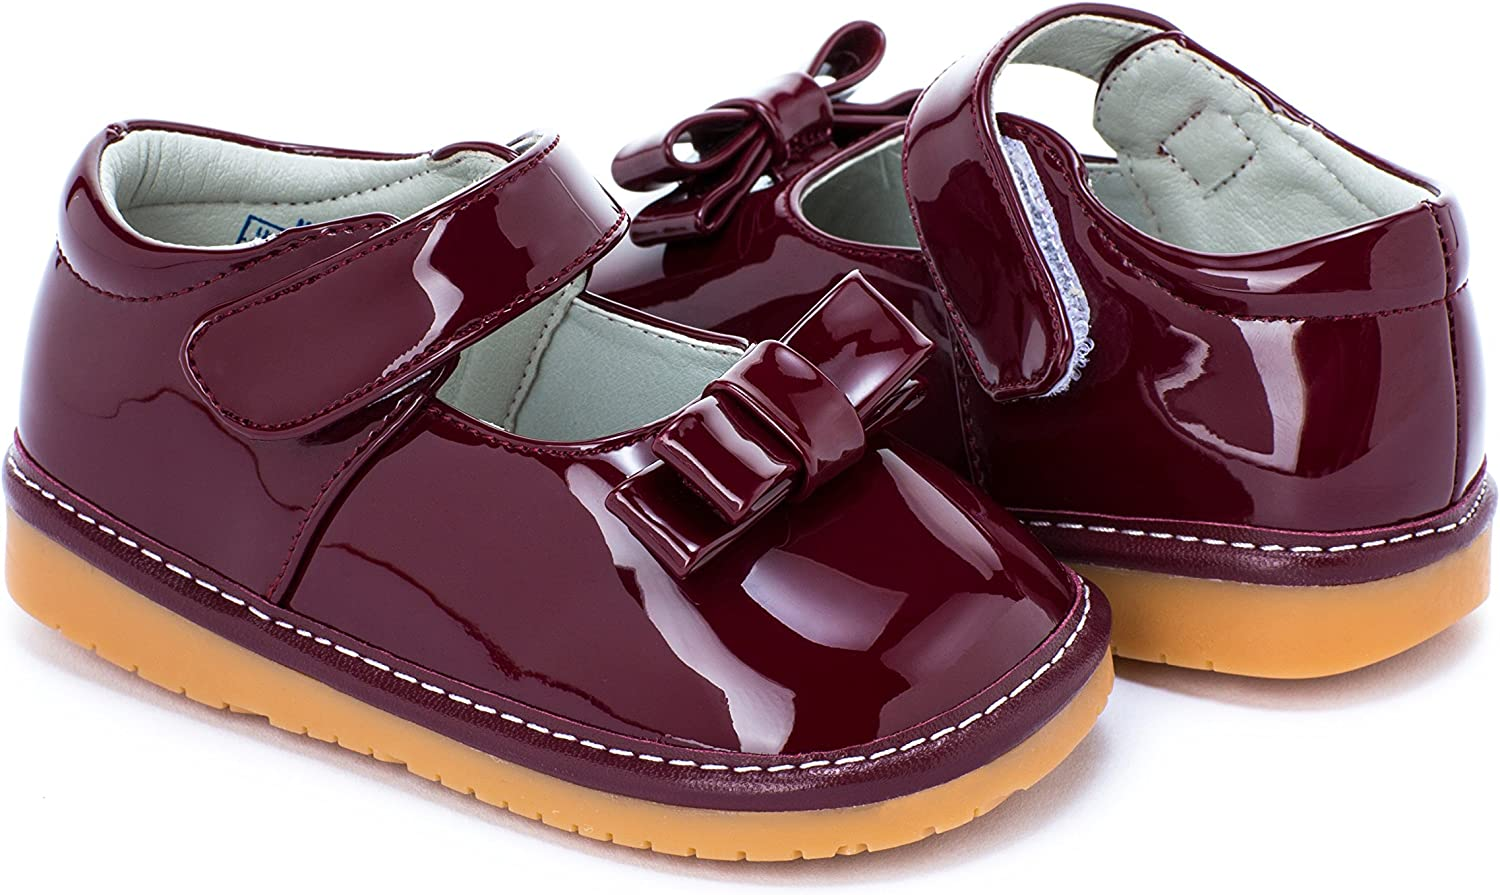 Squeaky Shoes Girls Deep Red for Baby//Toddler Wide Head with Removable Squeaker